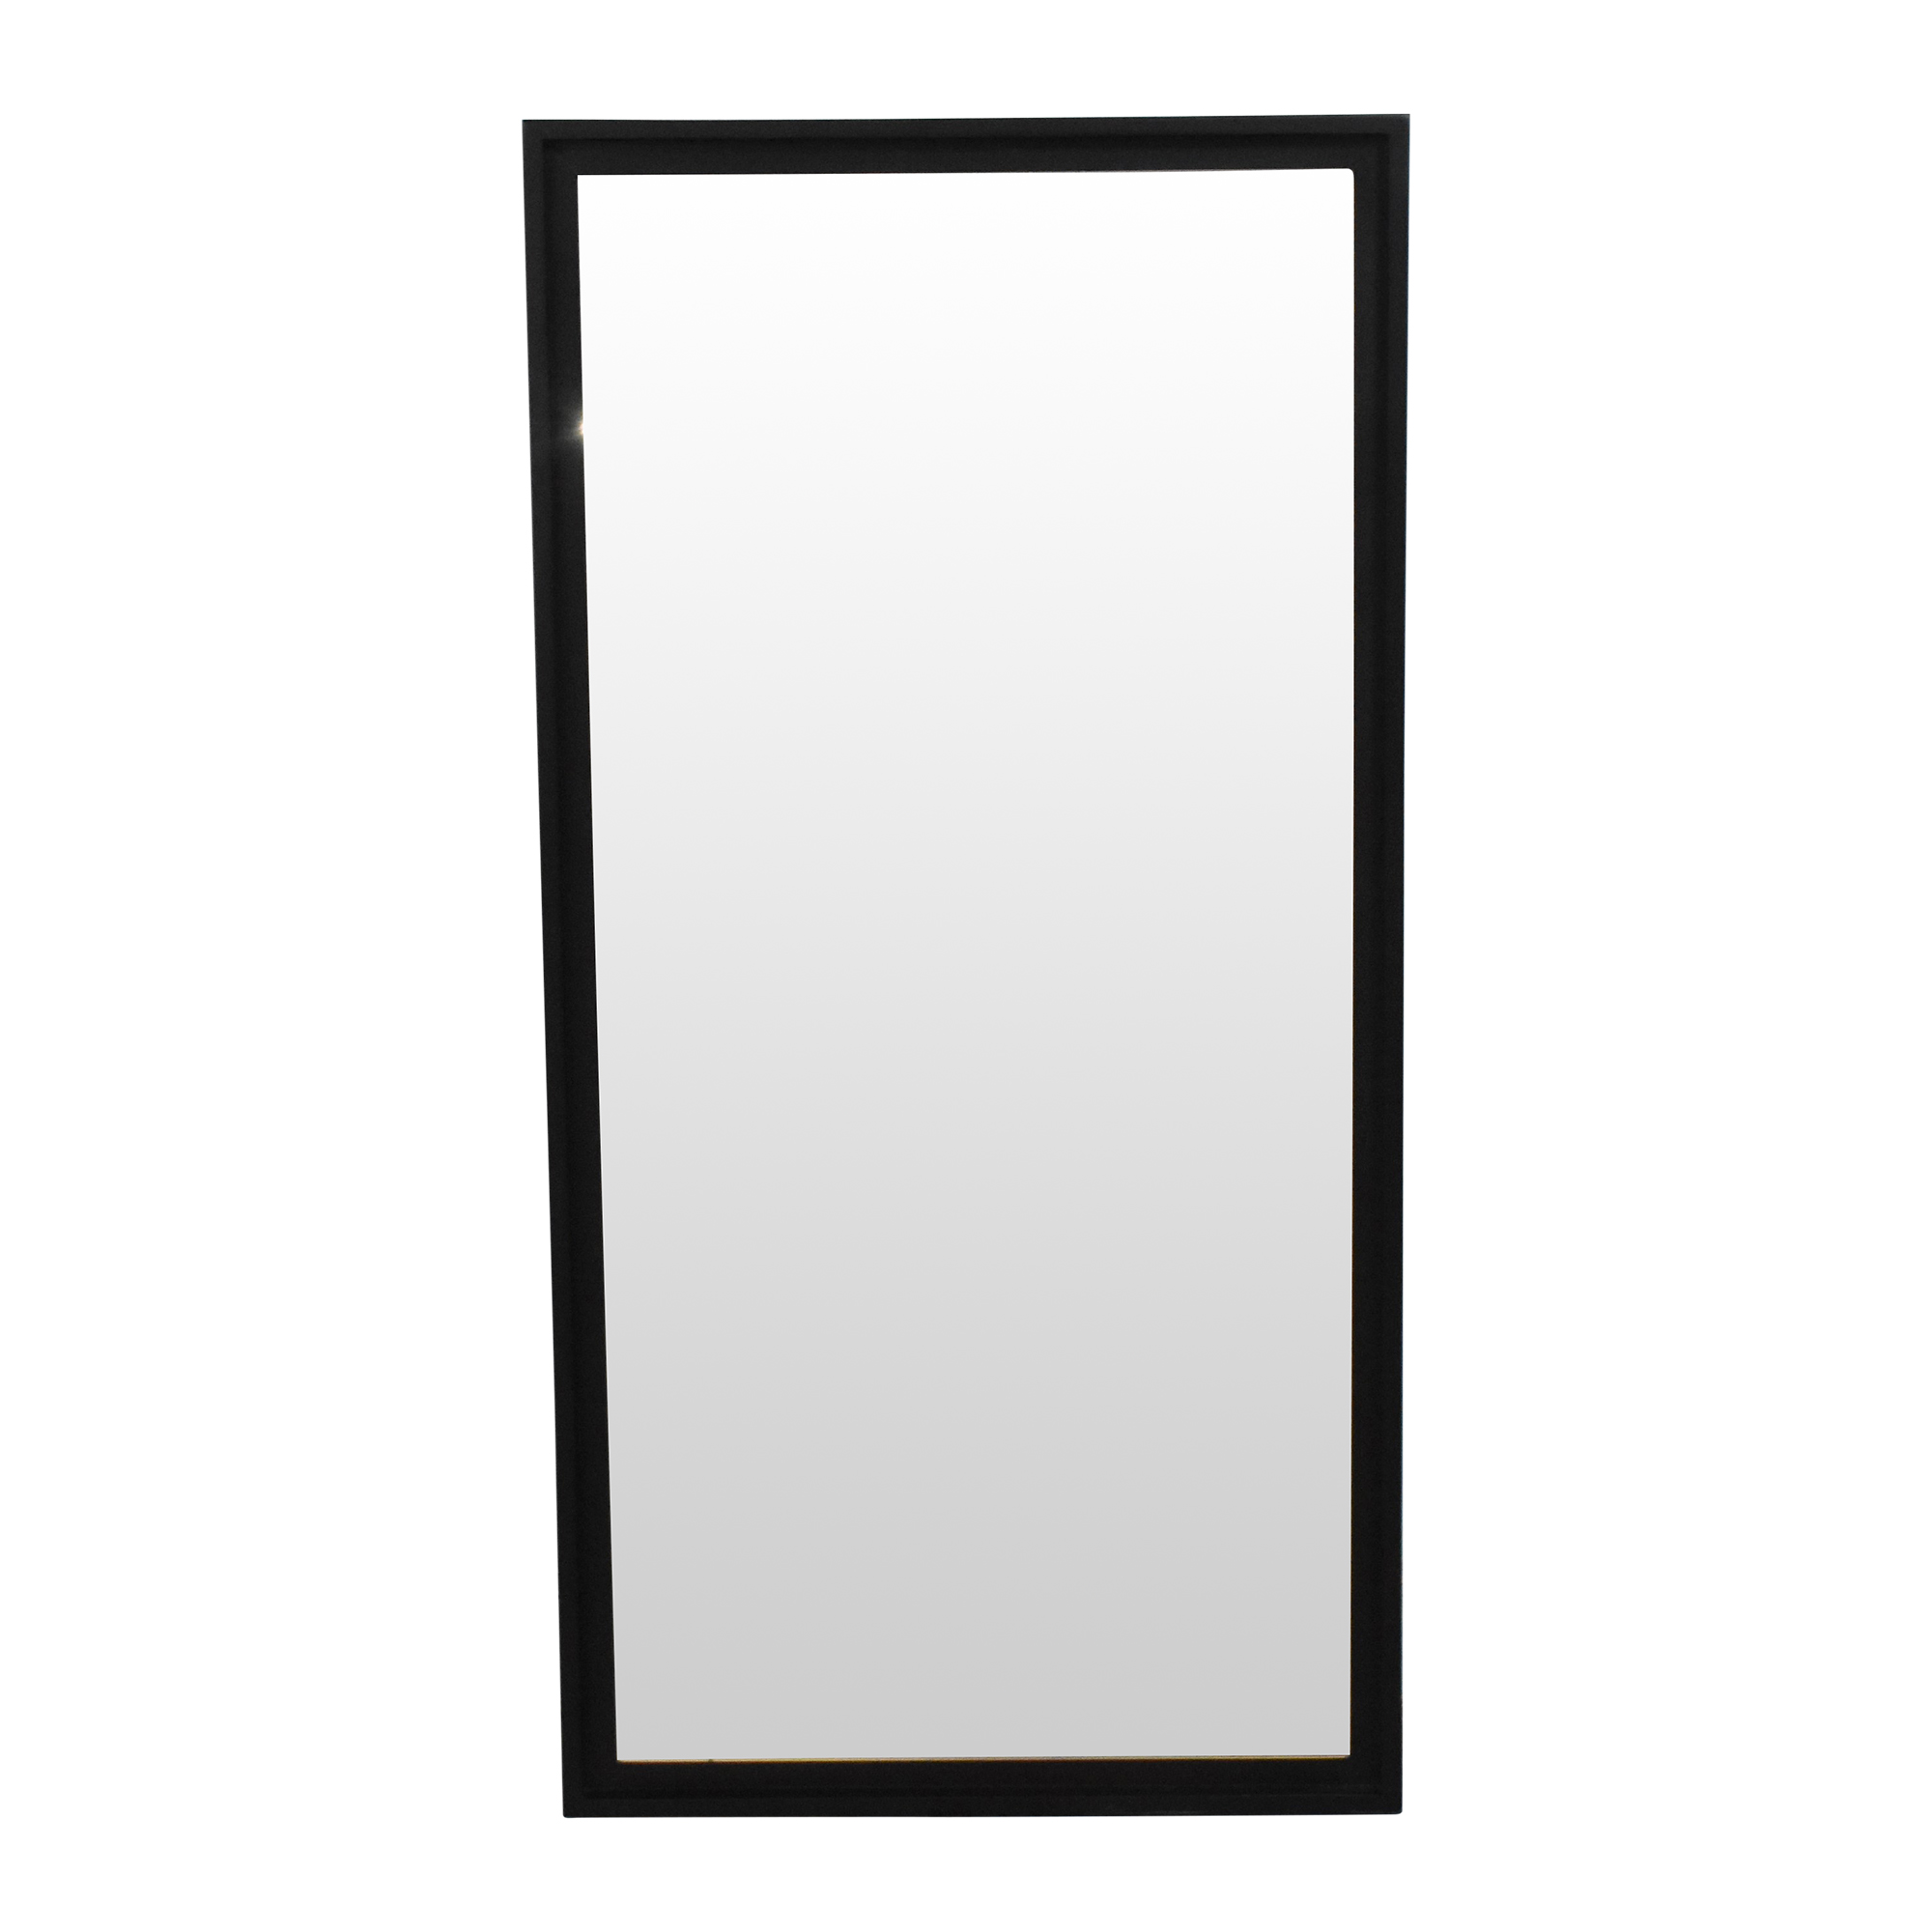 buy West Elm Framed Floor Mirror West Elm Mirrors